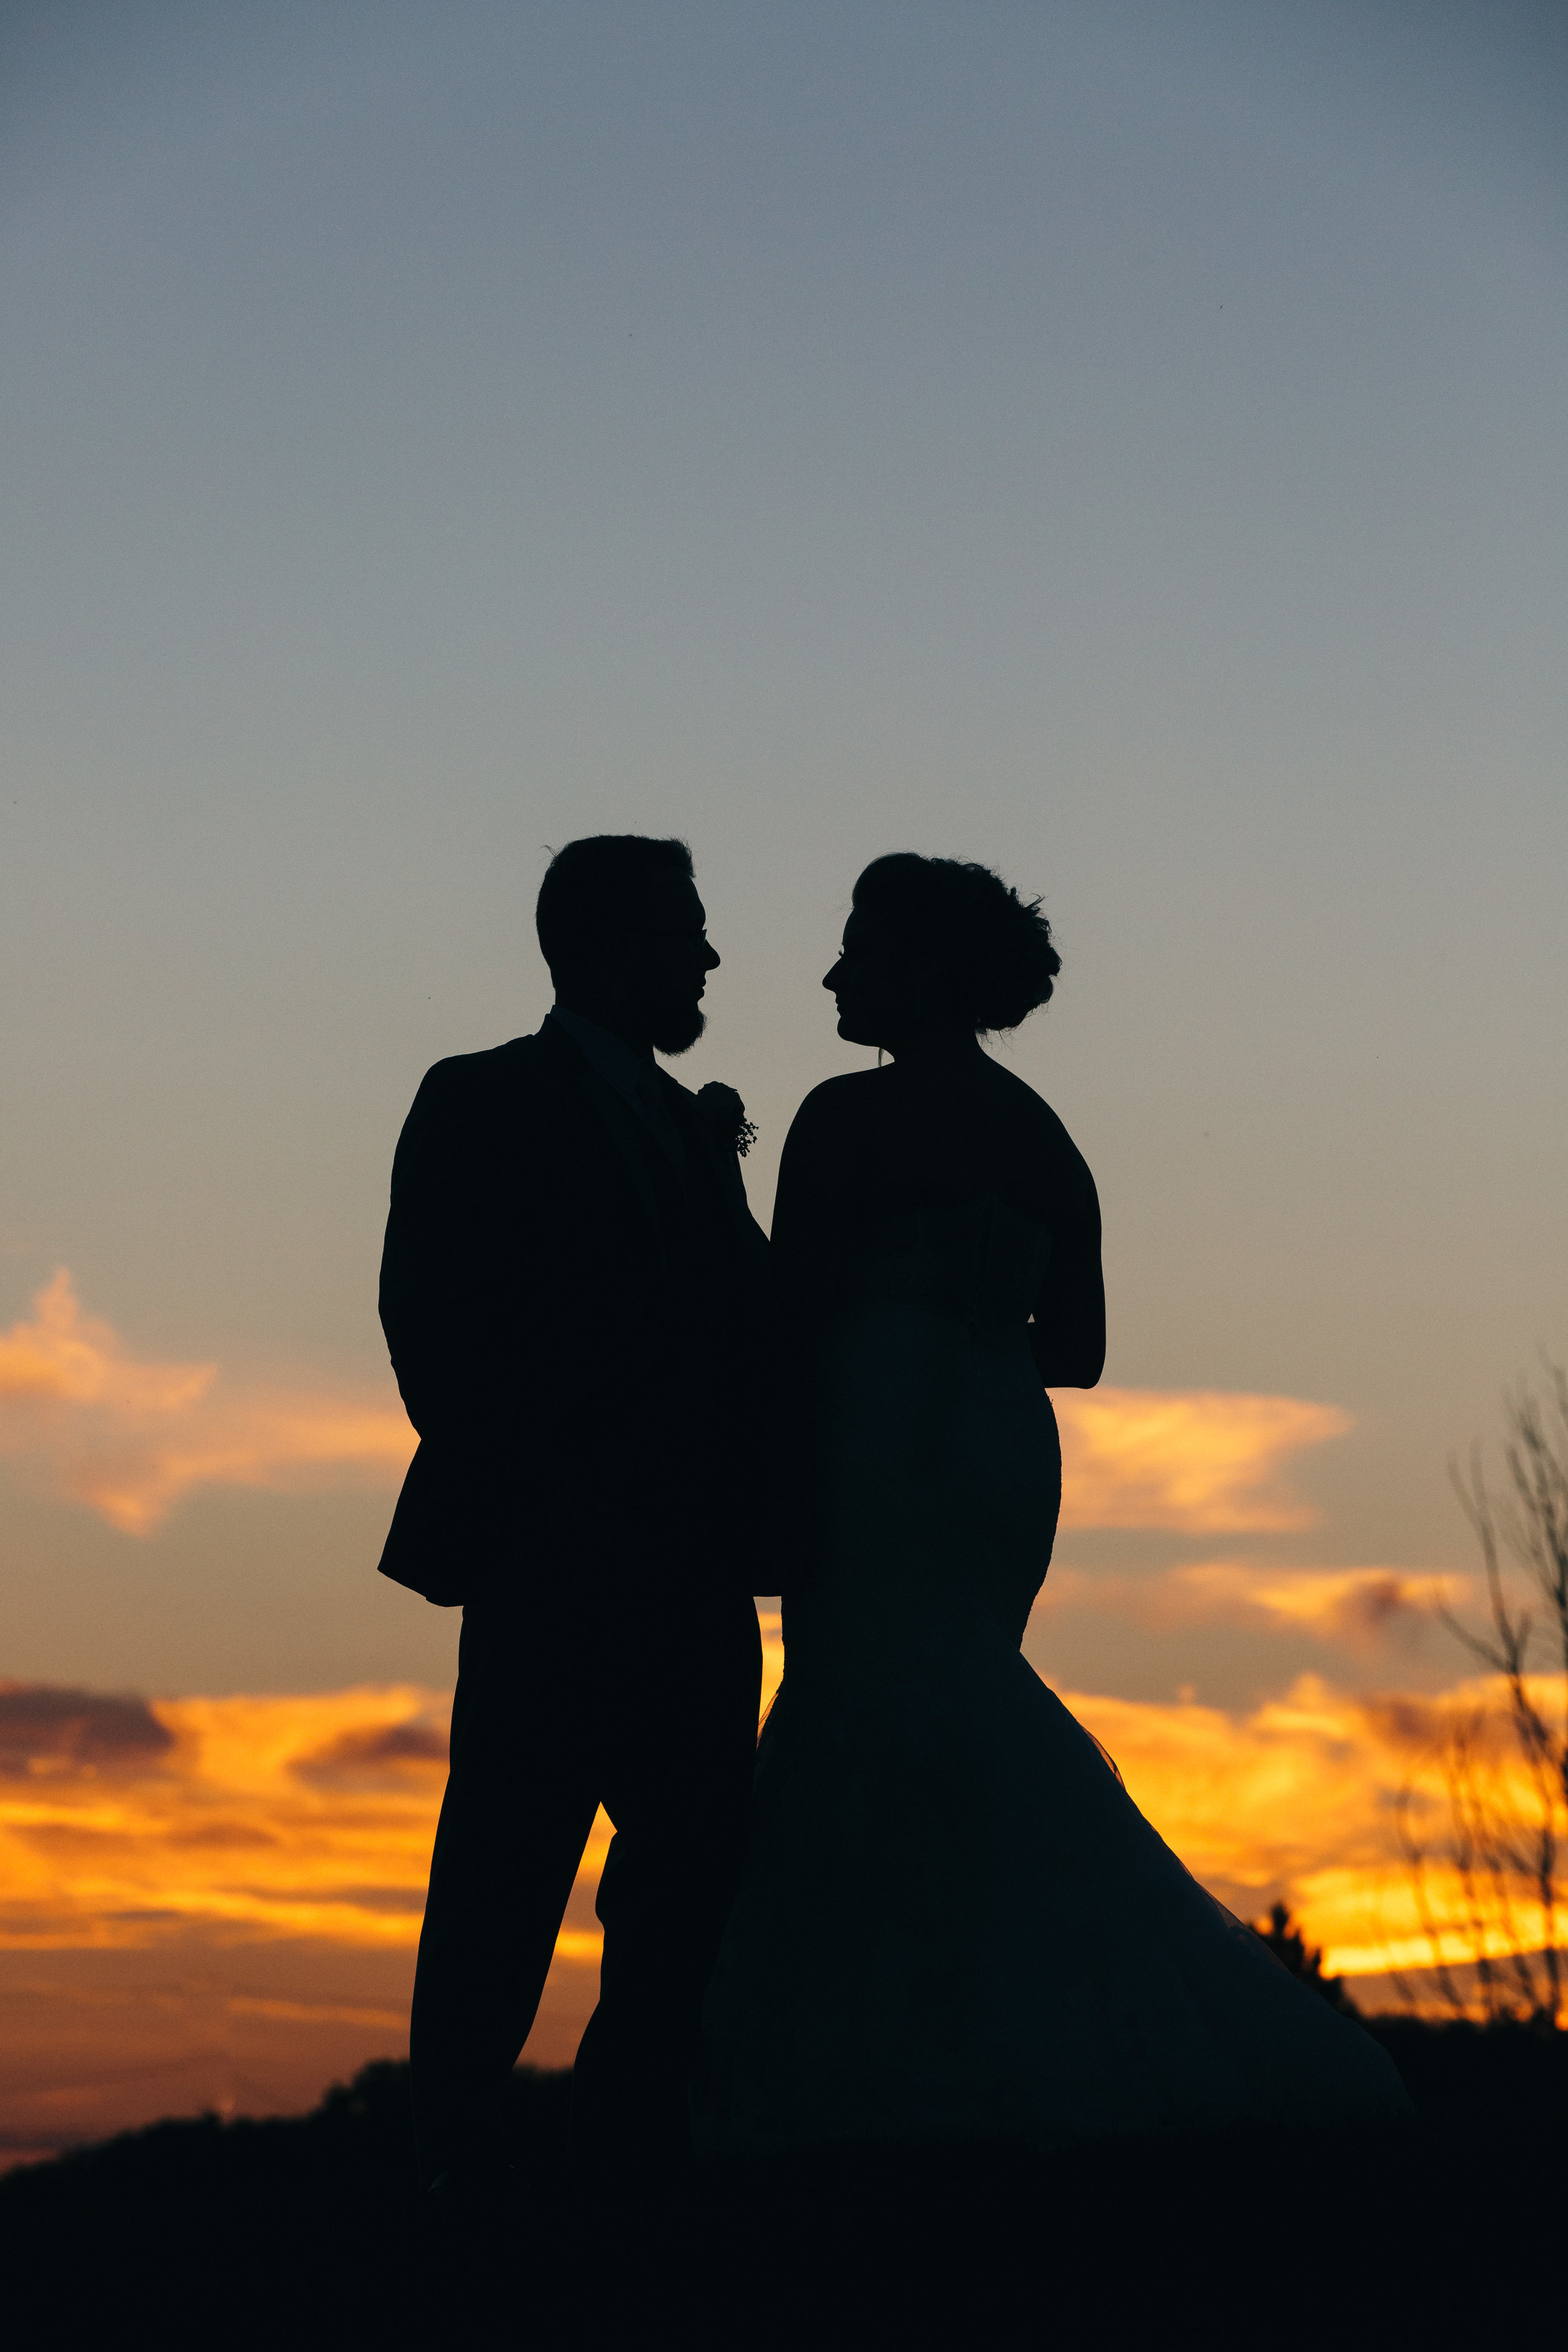 Sunset wedding photography at Bowling Green, Ohio